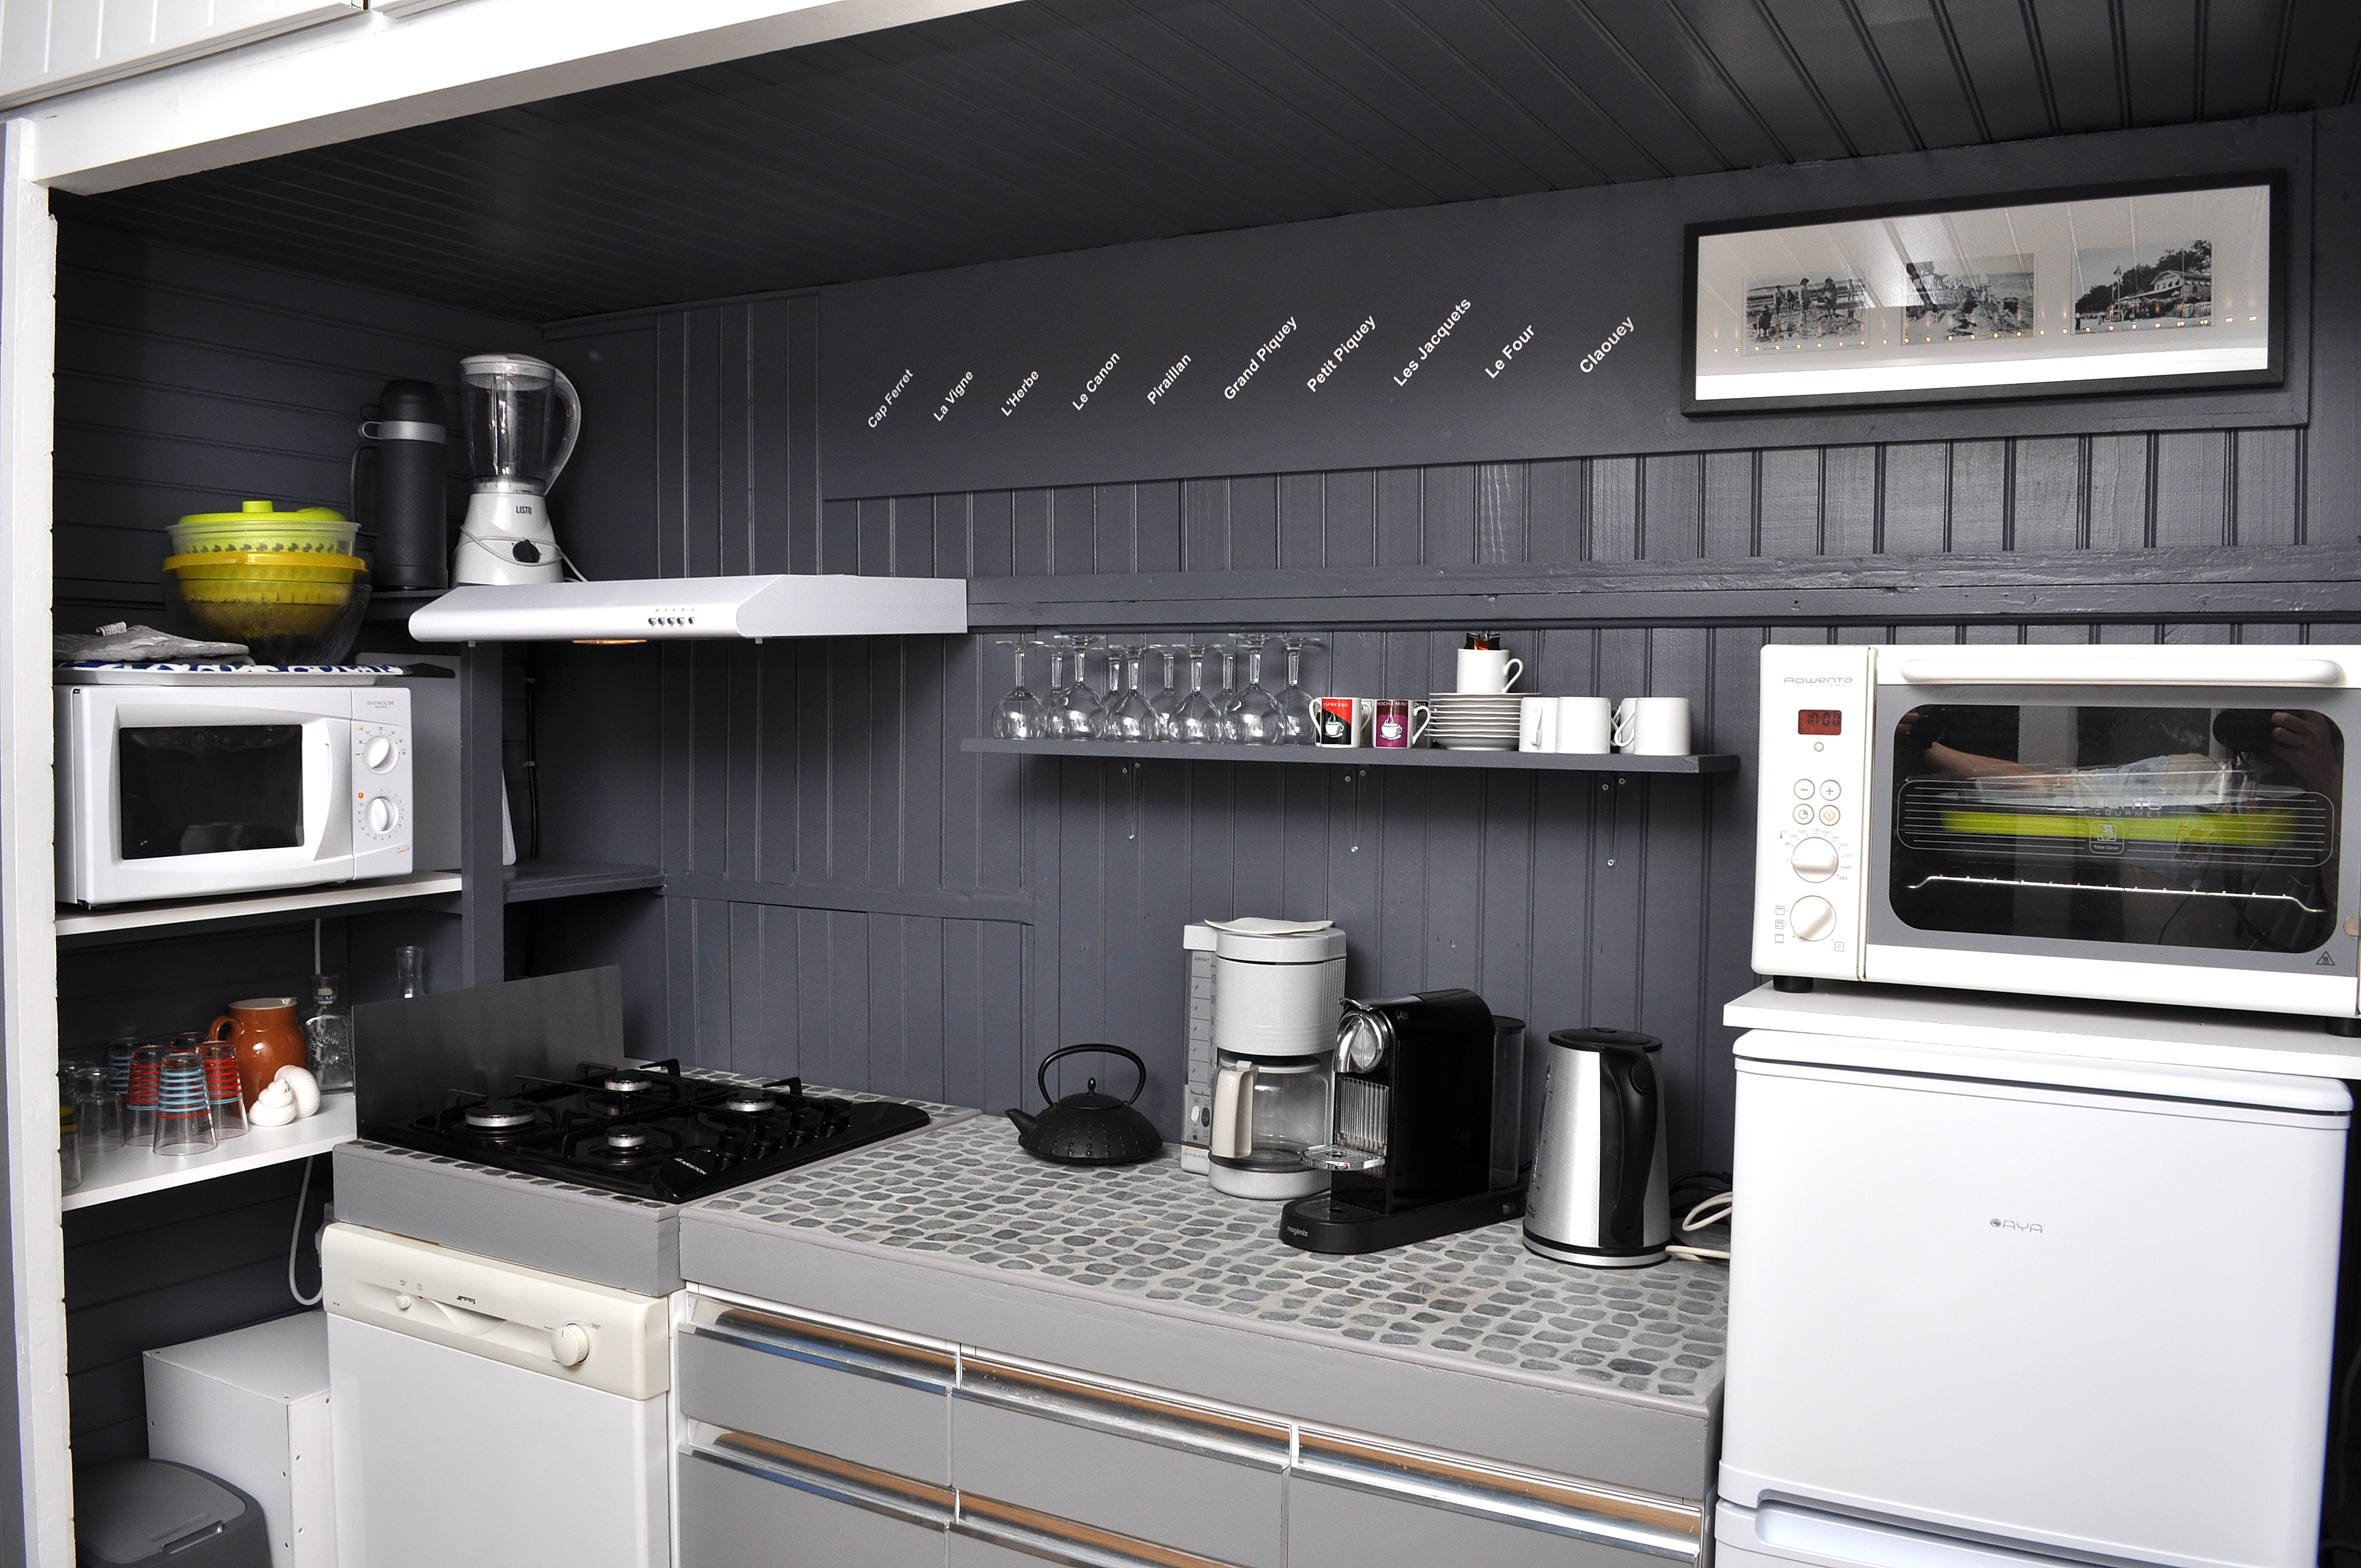 Peindre meuble en formica awesome idee peinture meuble - Relooker cuisine formica ...